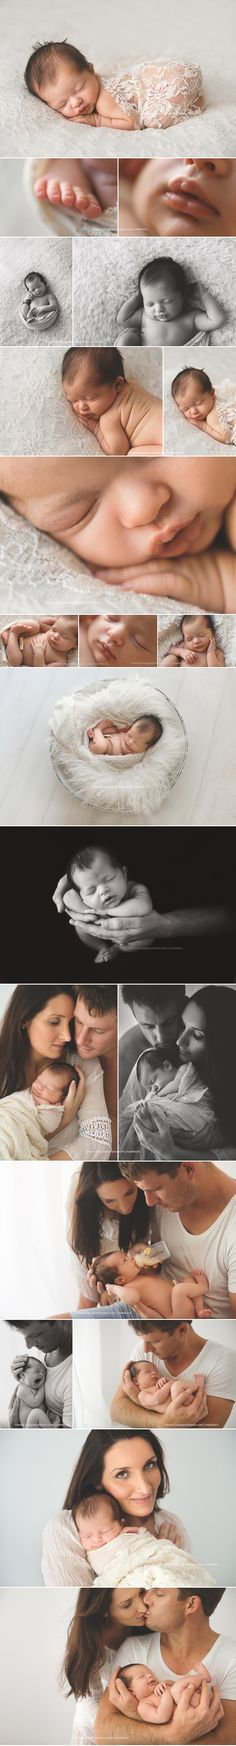 Matilda Perth Maternity and Newborn Photographer